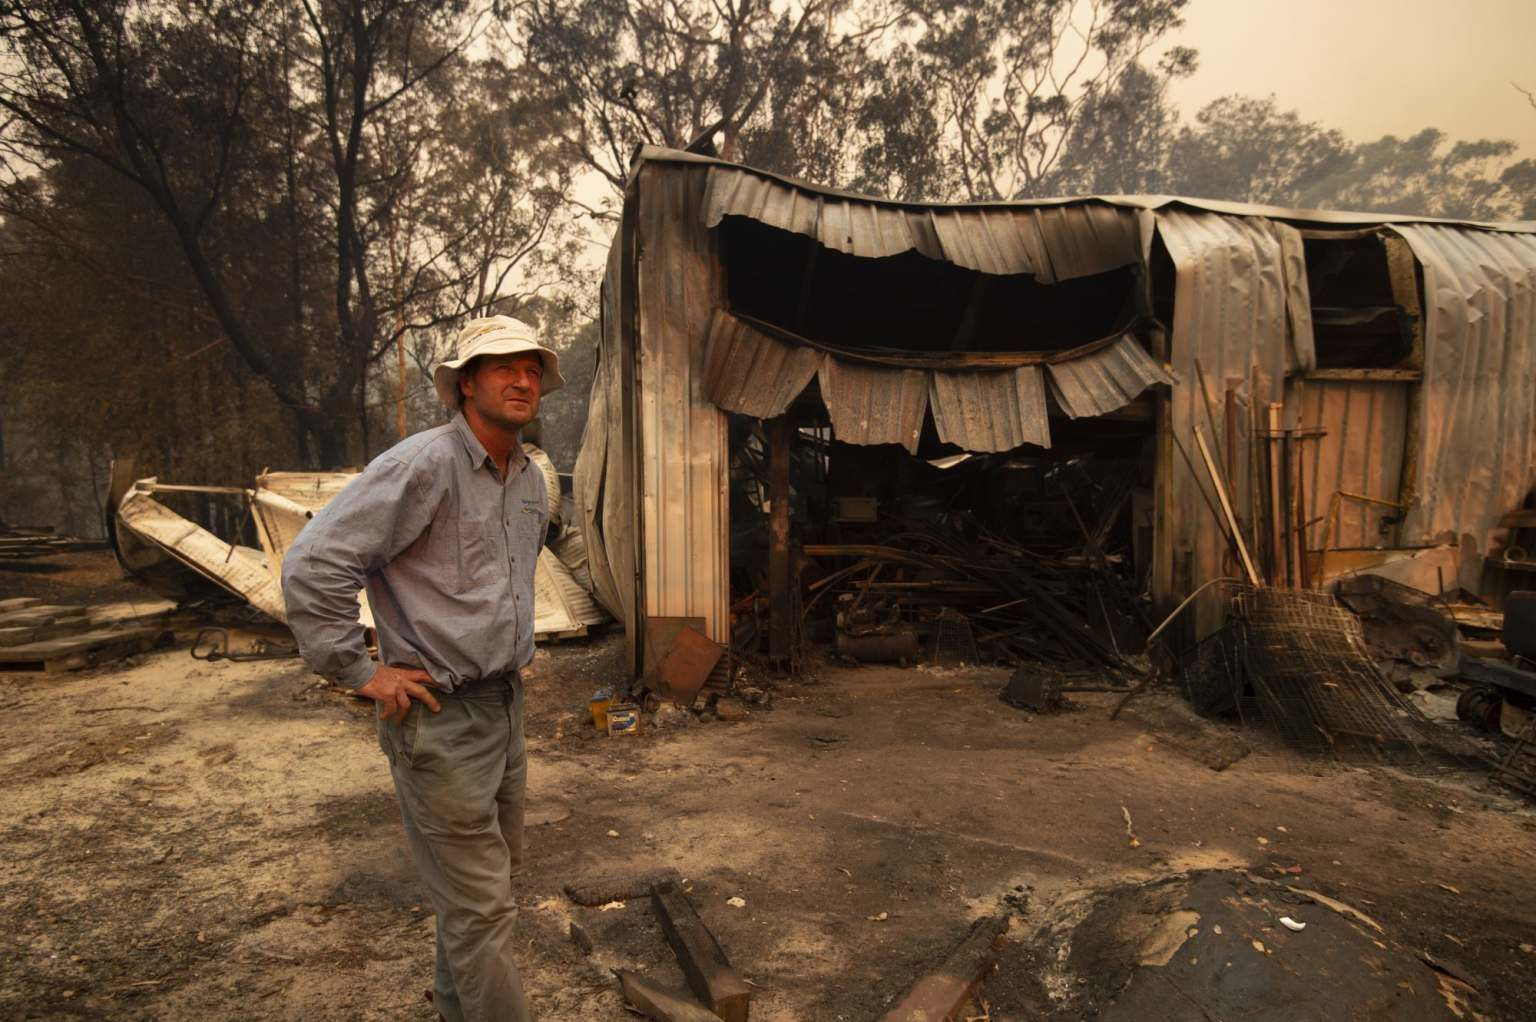 Out of control bushfires now threaten homes across greater